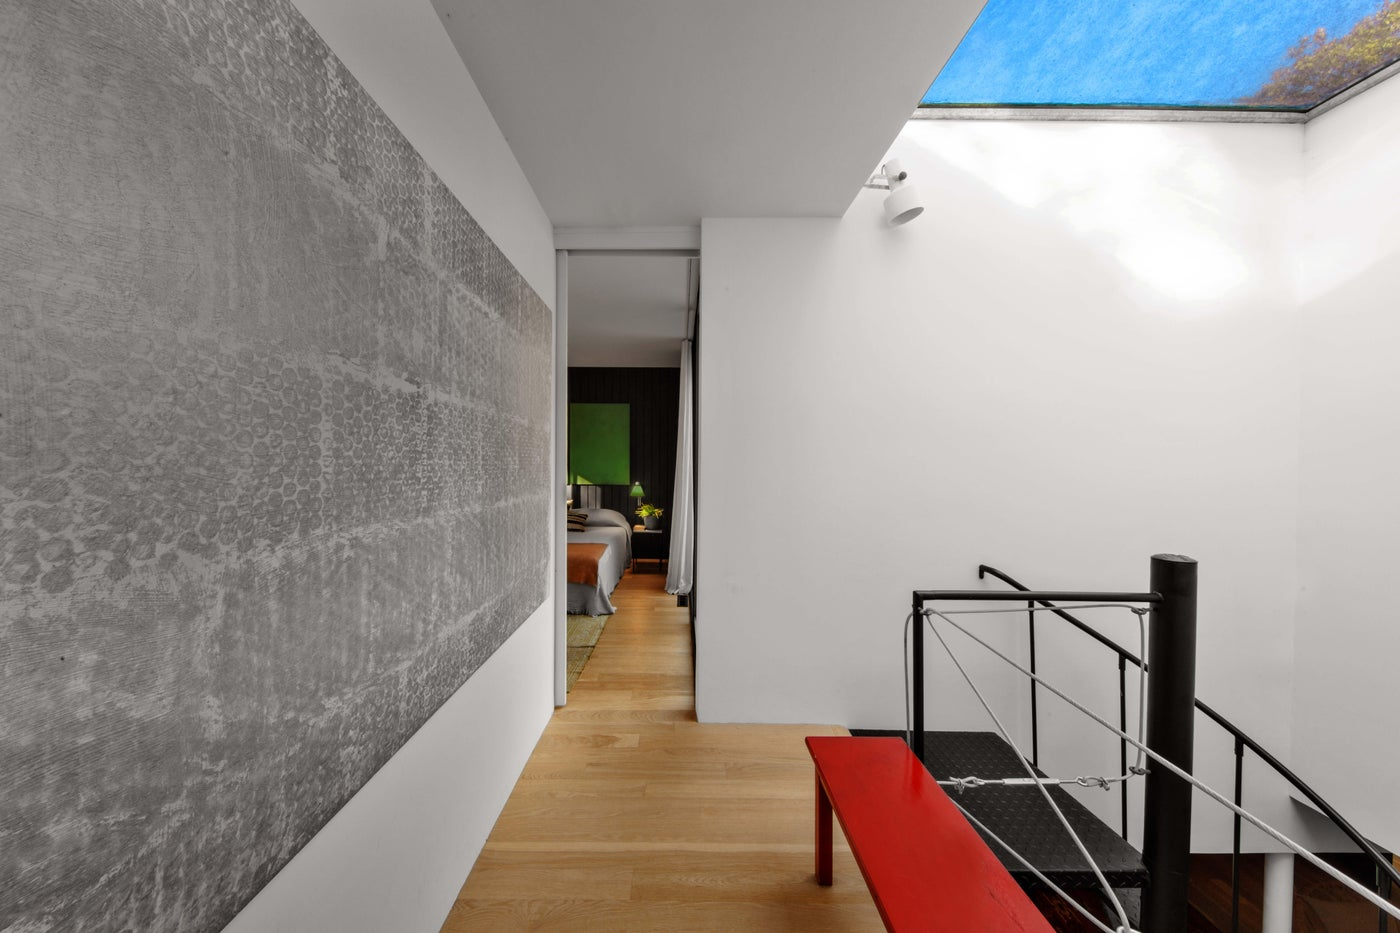 Clean modern hallway with skylight, red bench, large scale art